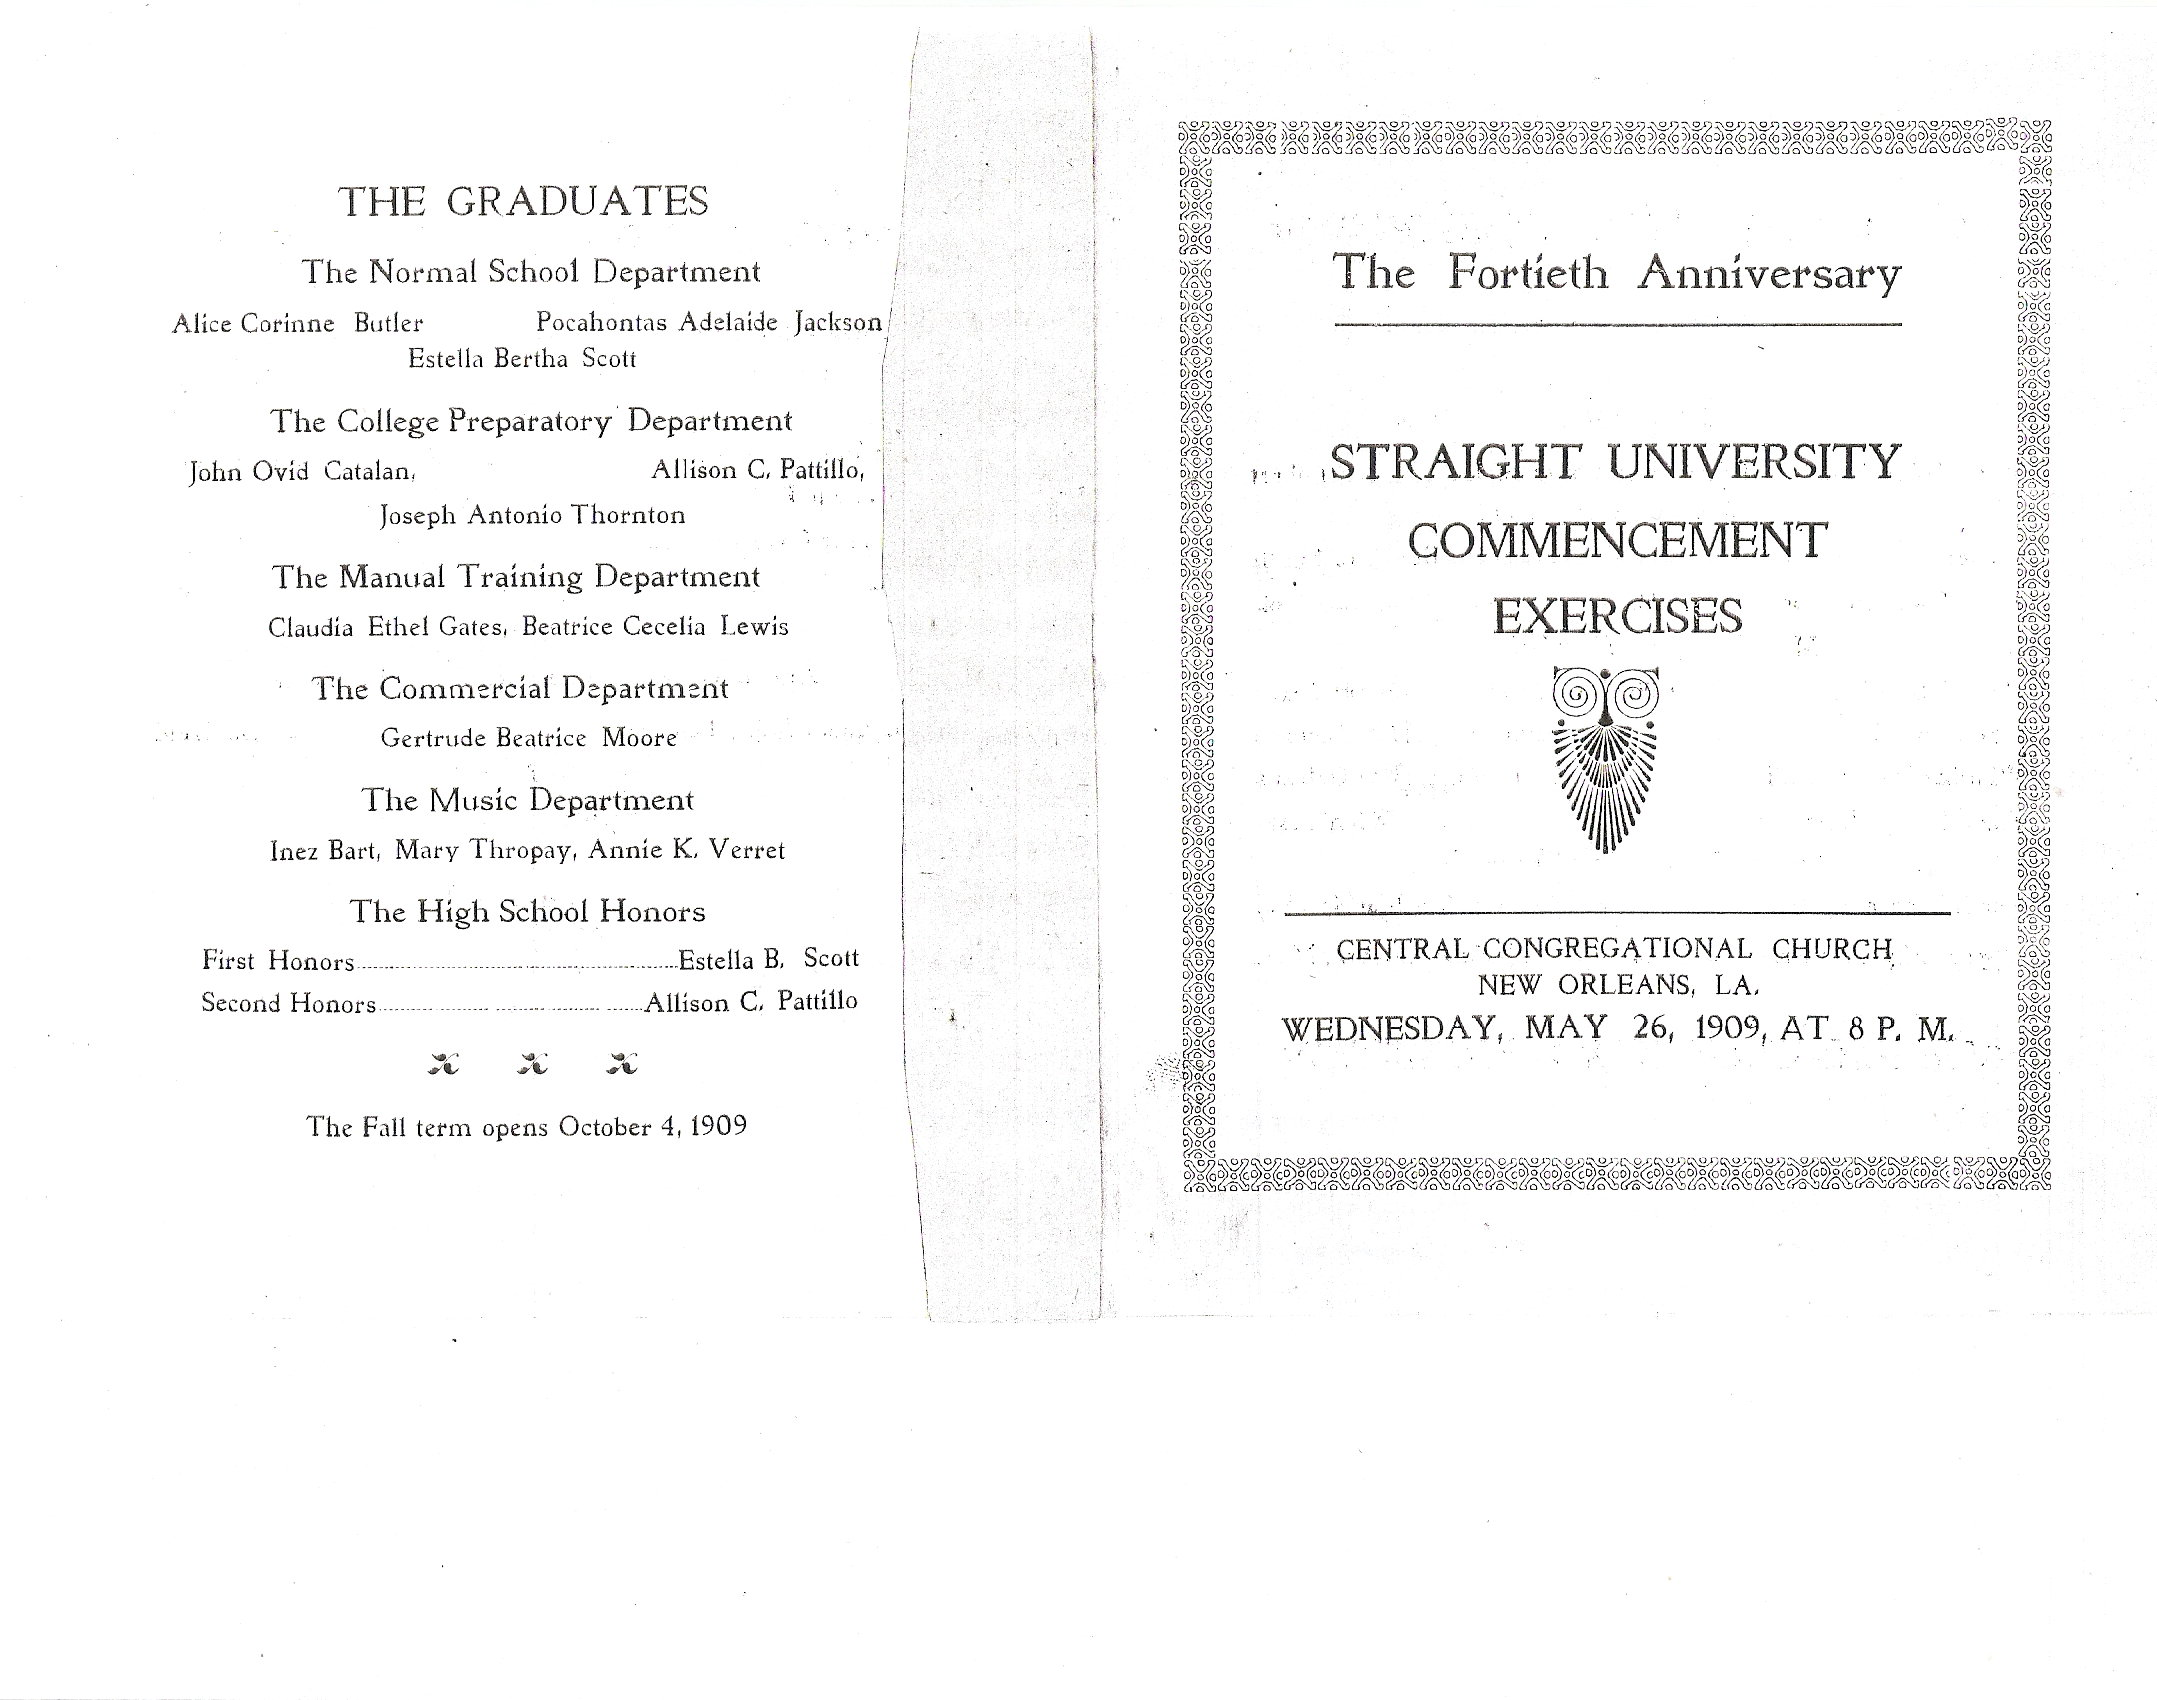 1909 Commencement - Straight University, New Orleans